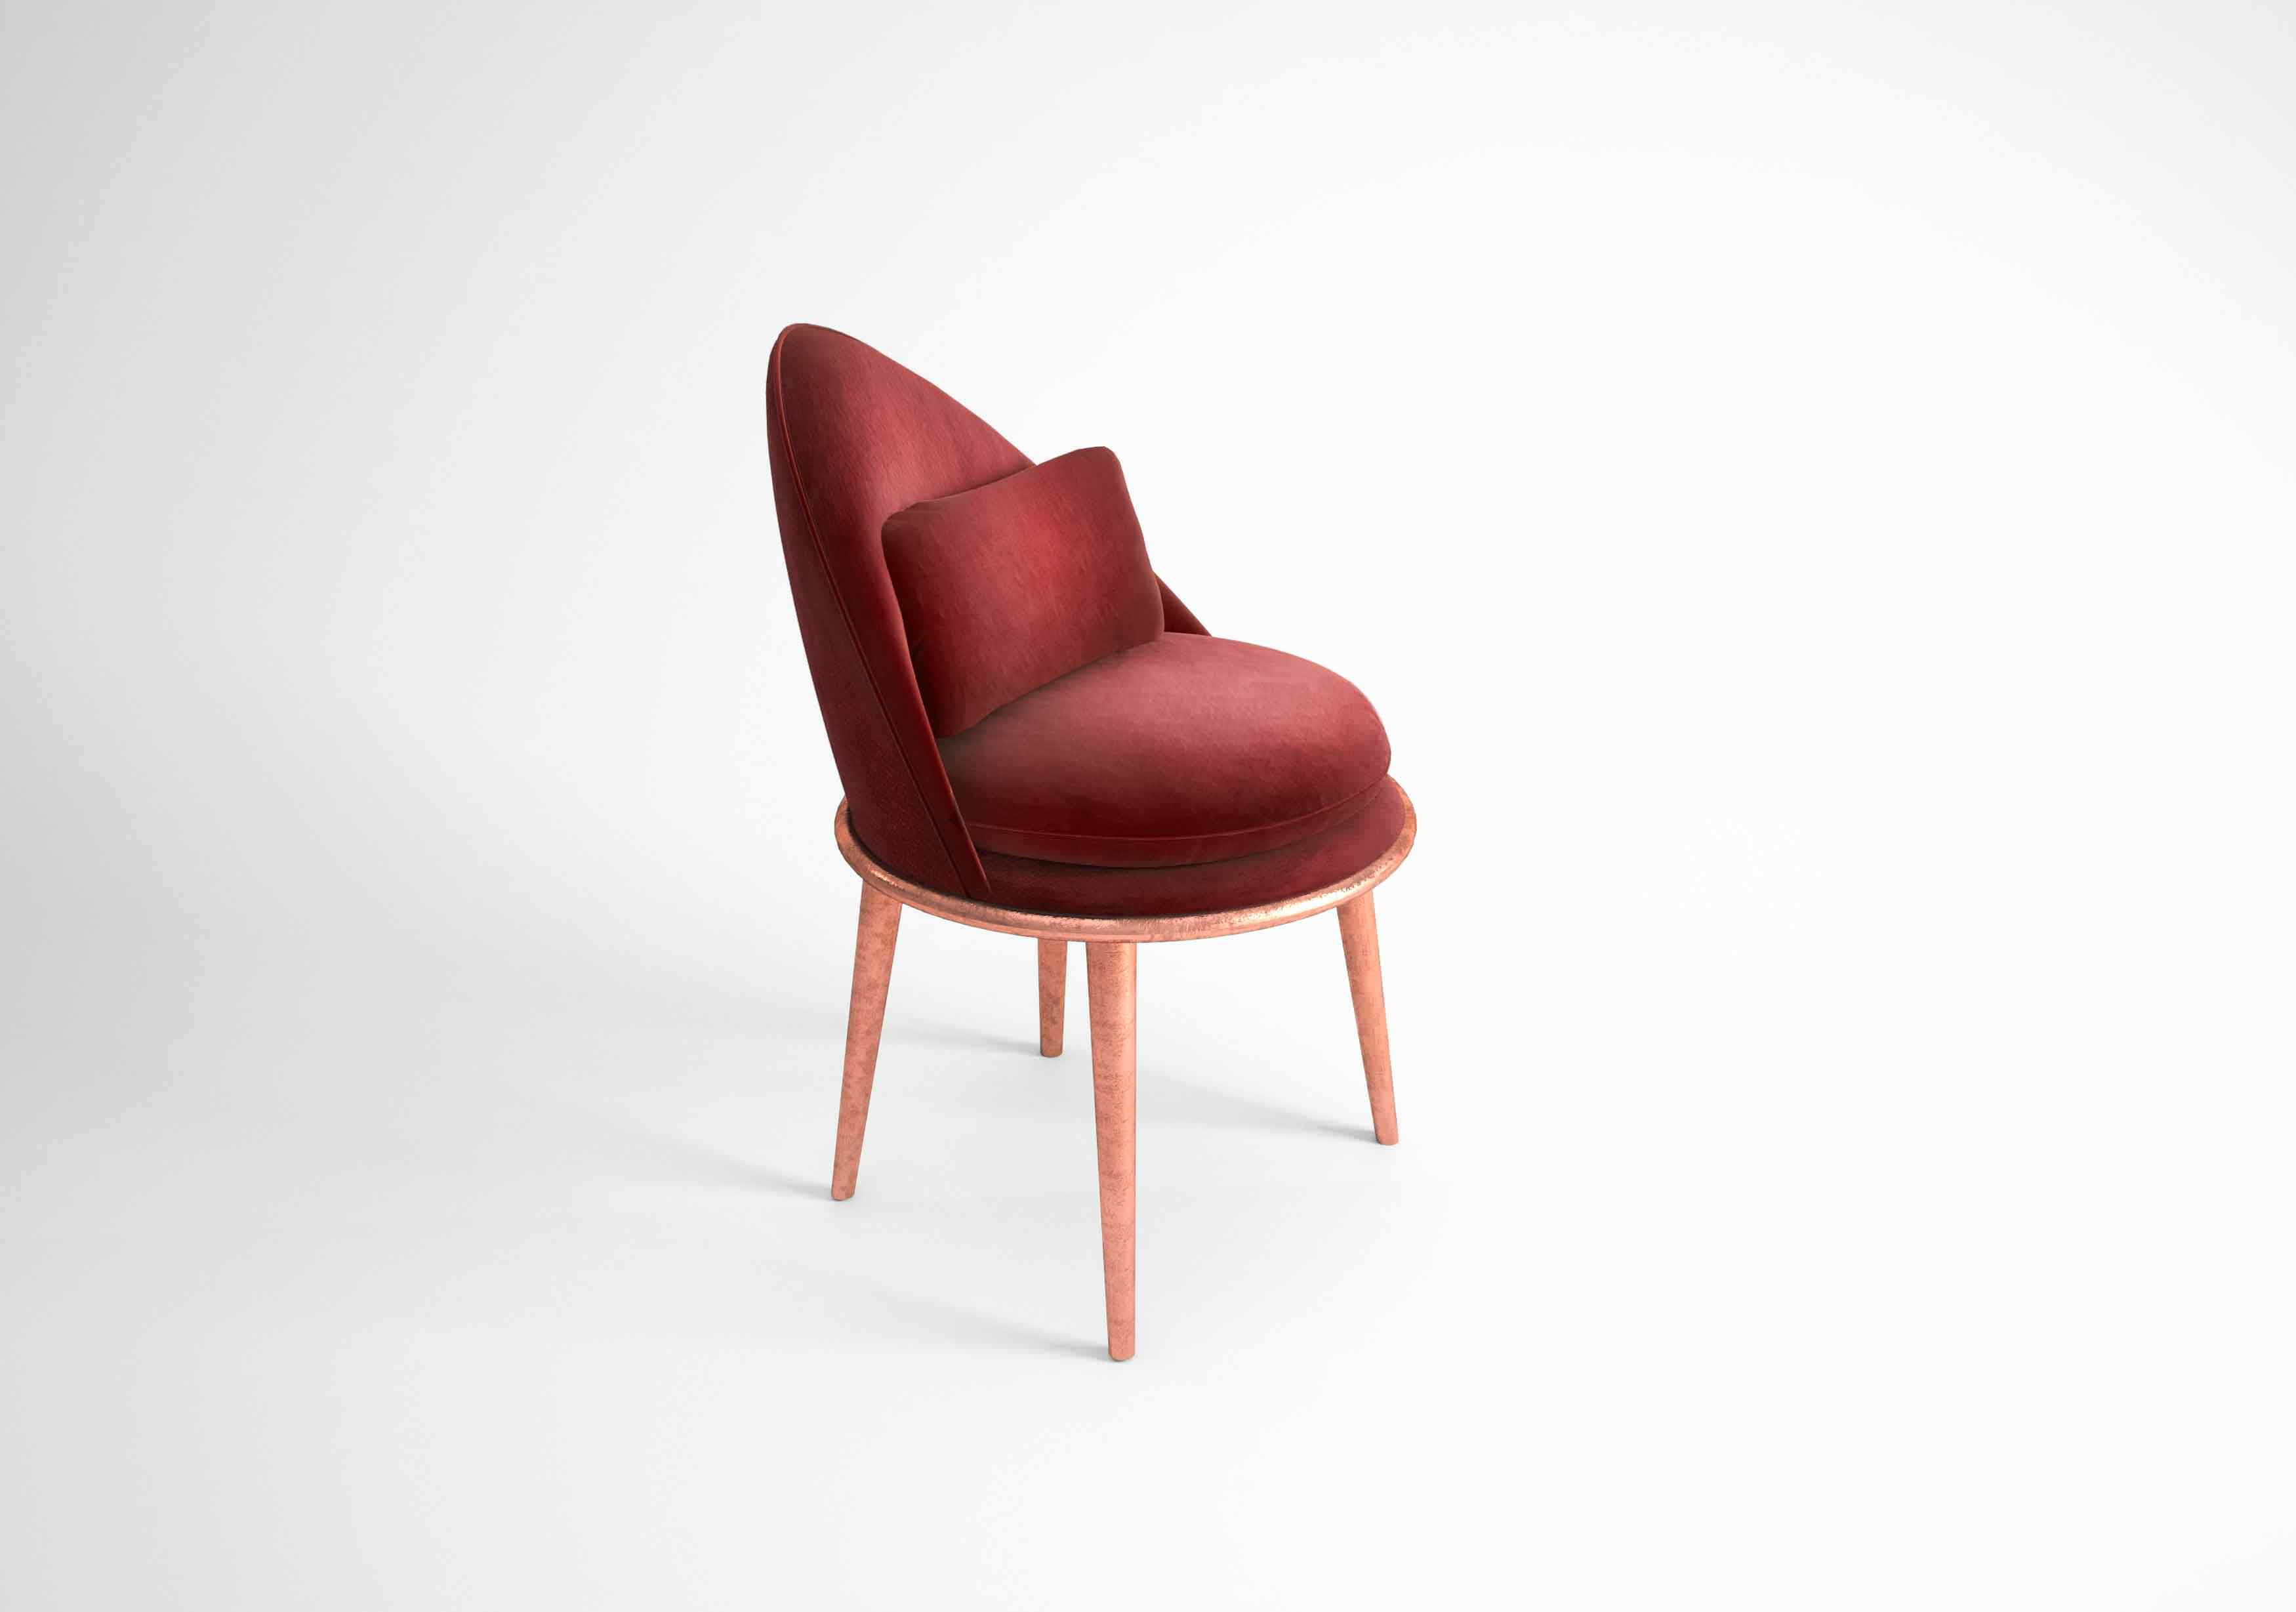 The Garnet dining chair is a luxurious dining chair that will bring so much glamour and charming beauty to your dining room. Make that chair a masterpiece in your home.